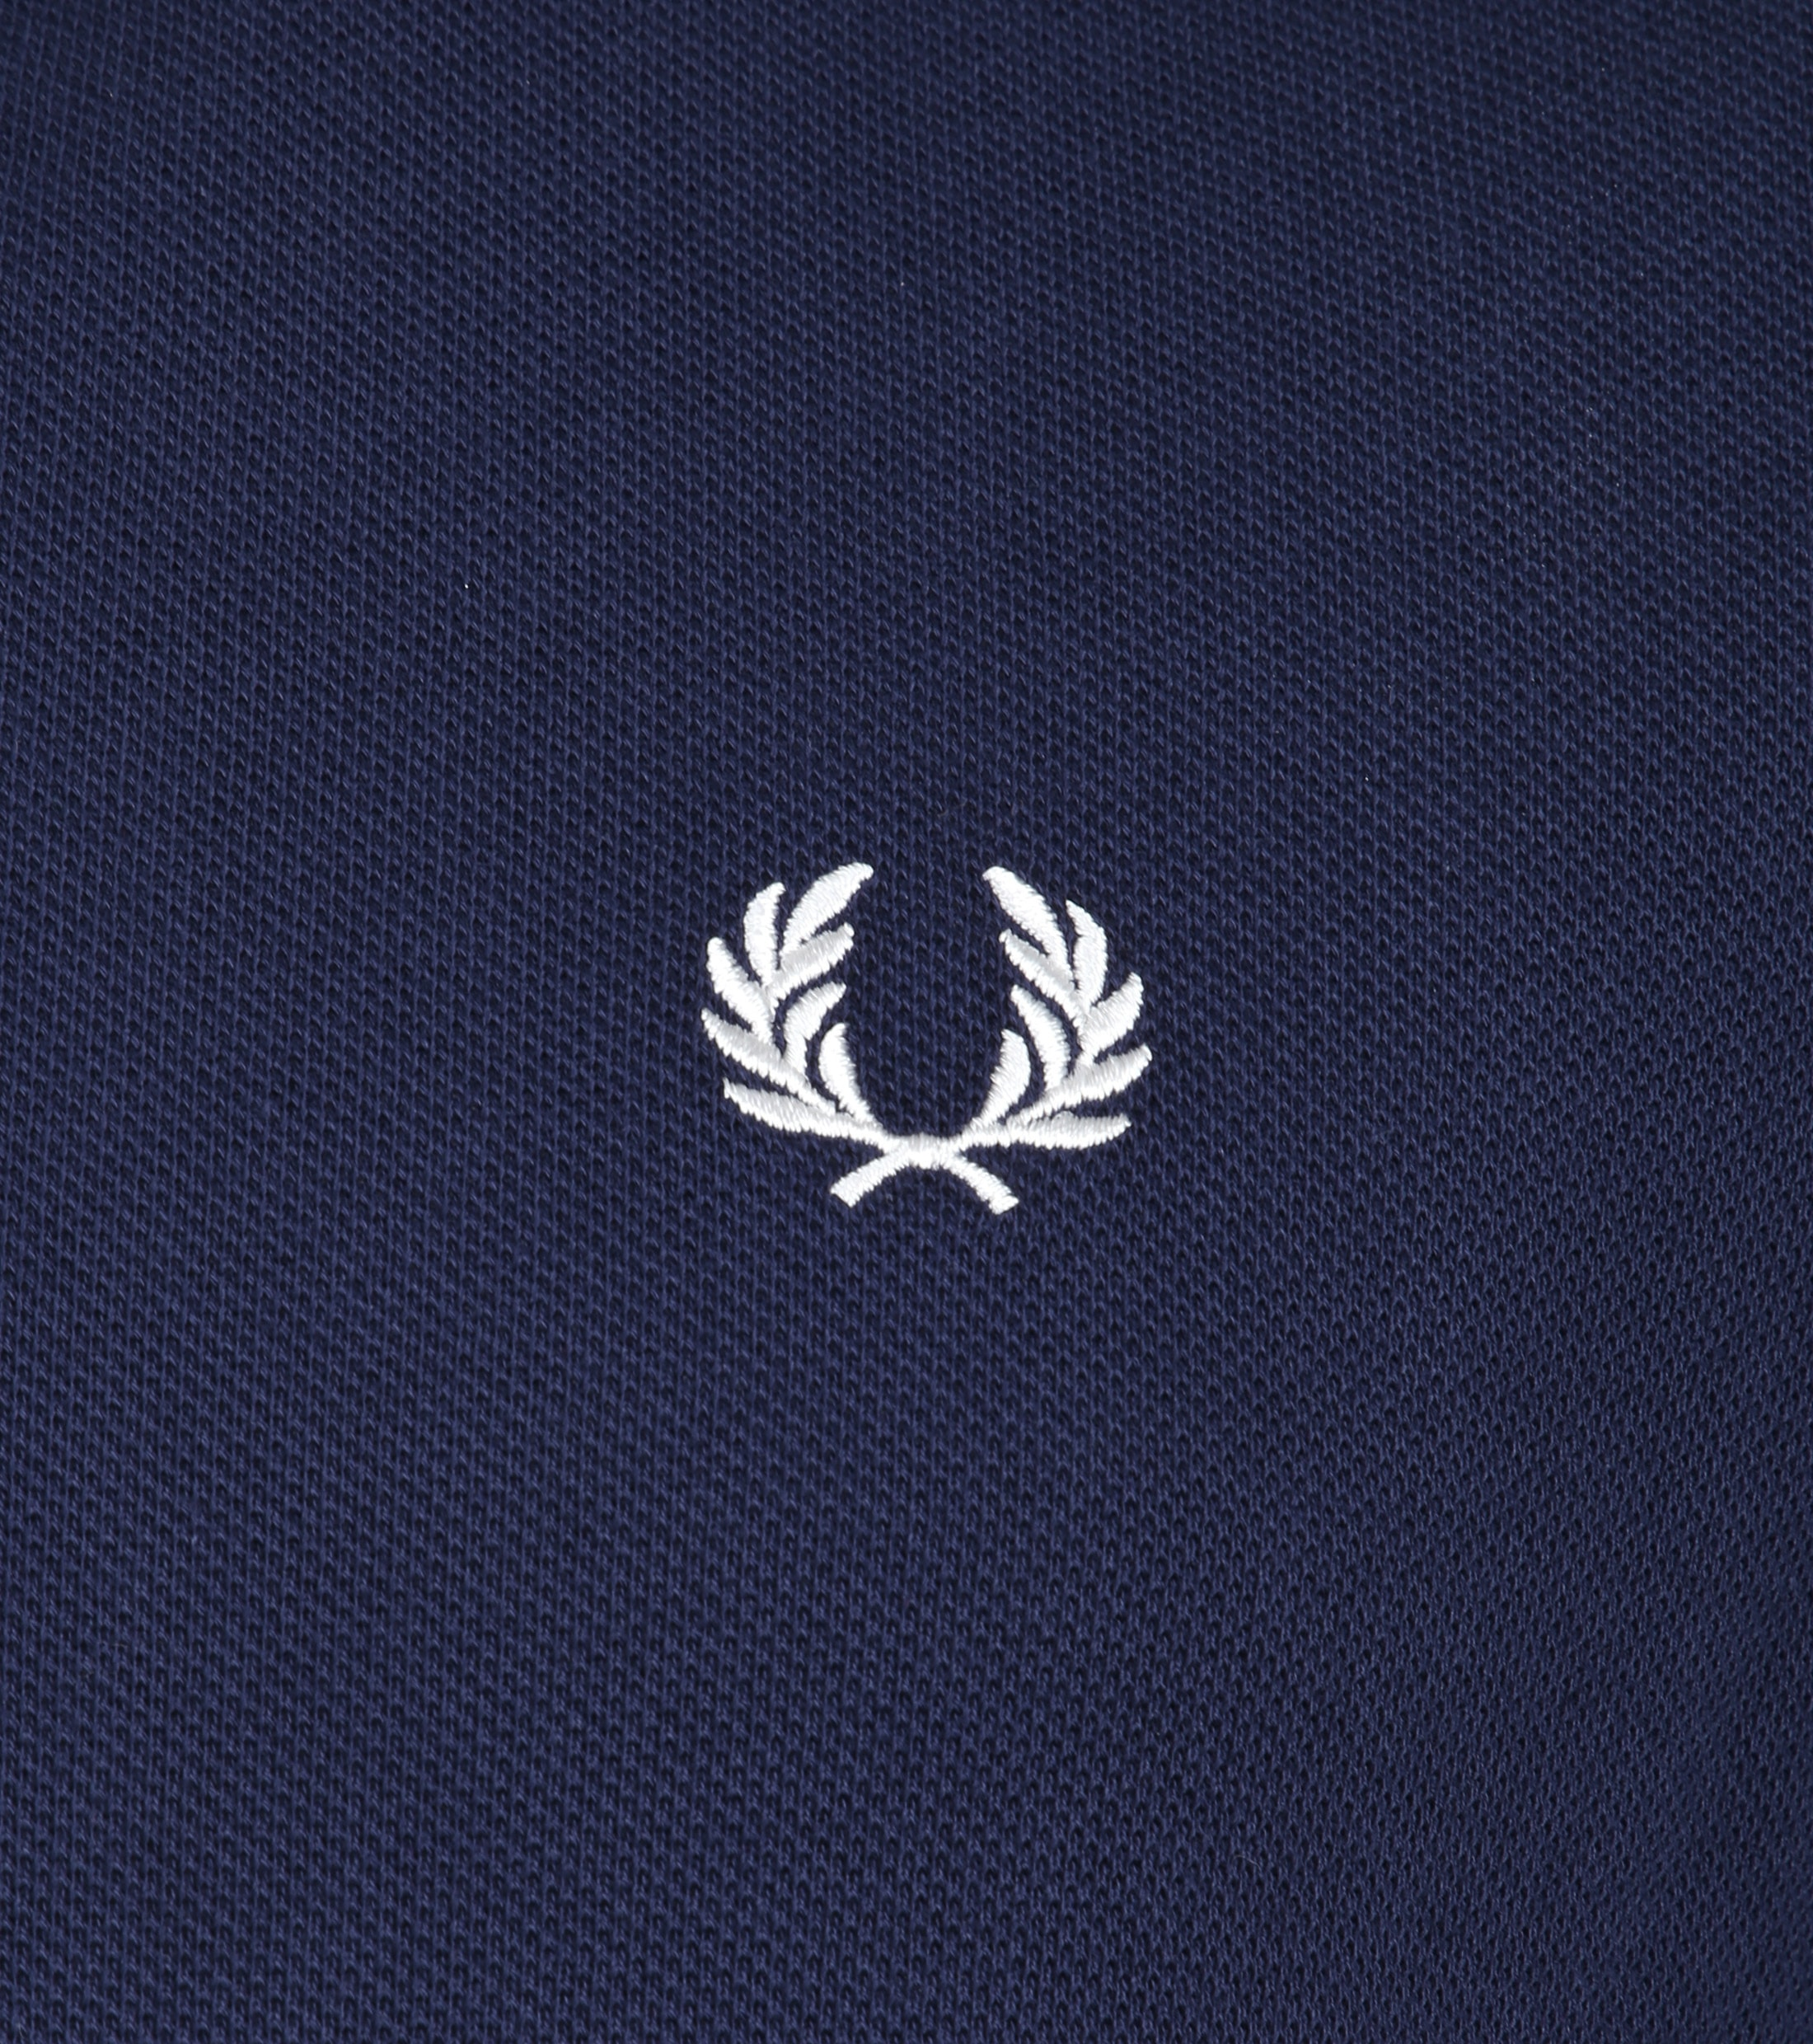 Fred Perry LS Poloshirt Navy I86 foto 2